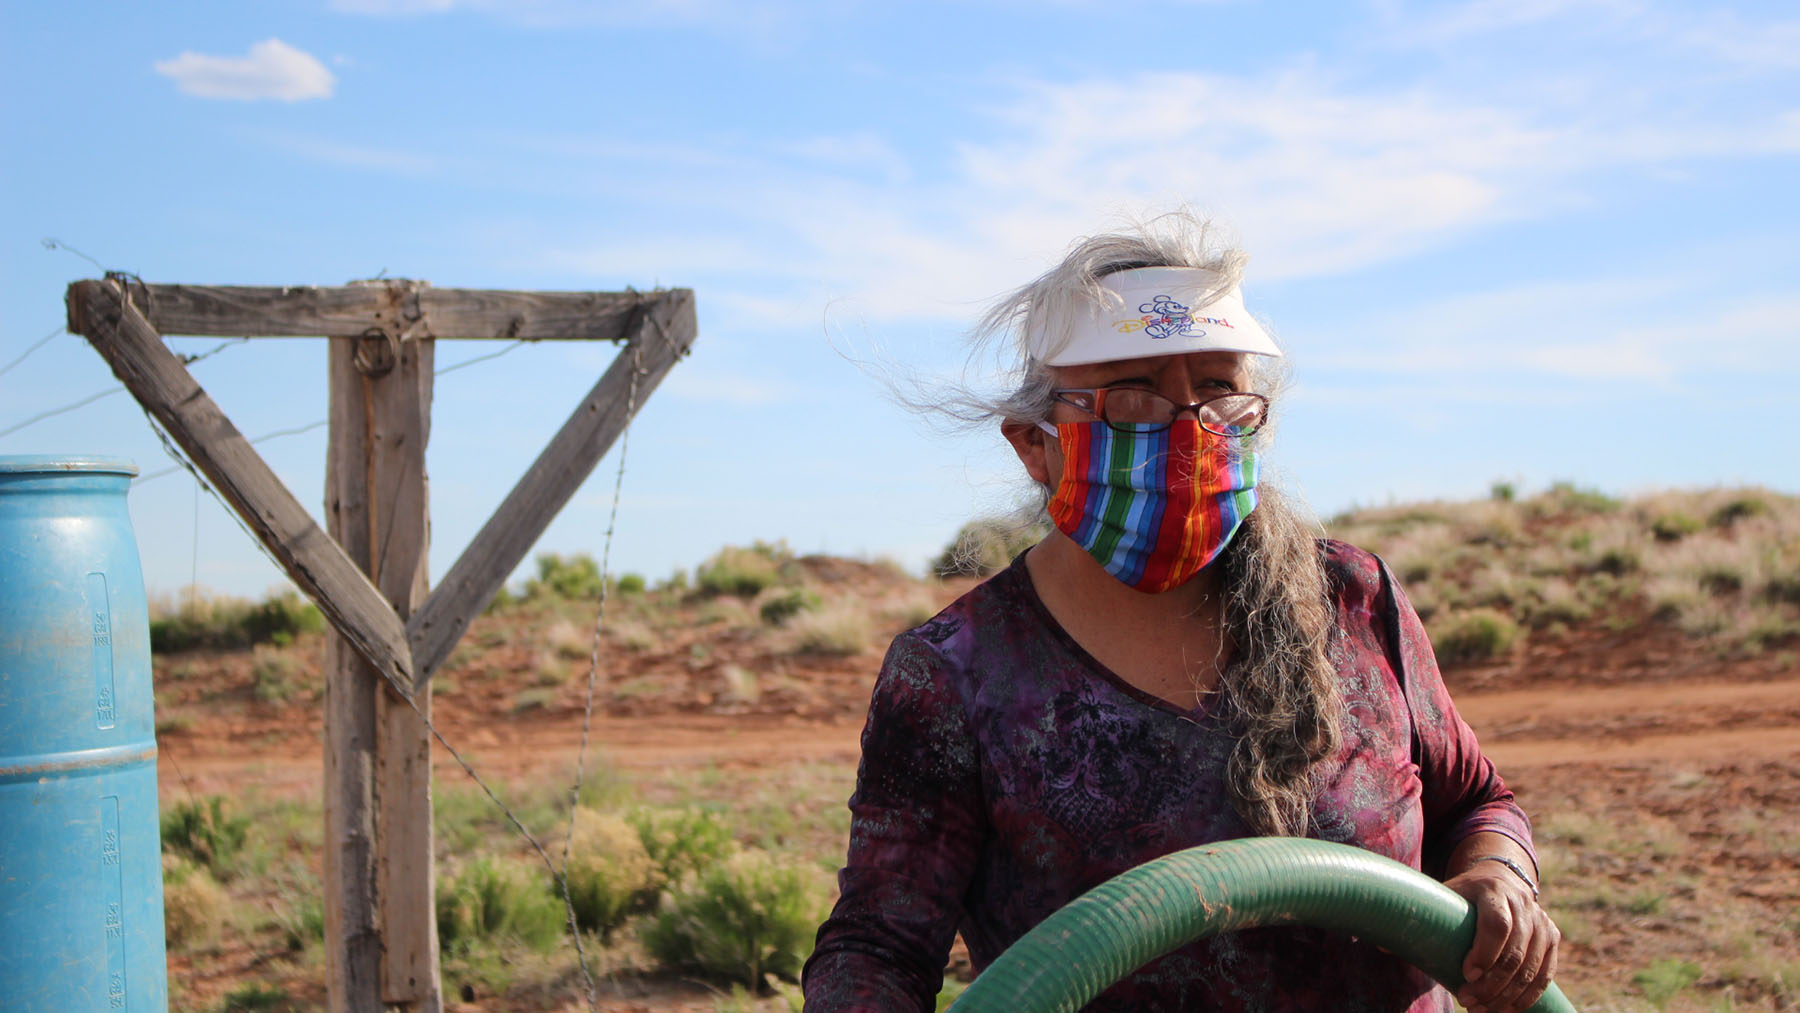 Navajo Nation resident Verna Martinez pumps water for fellow community members in April, 2020.  Infrastructure challenges exist for many parts of the nation, but health providers are working to ensure access to care.(Photo by Jonathan Schell for Direct Relief)